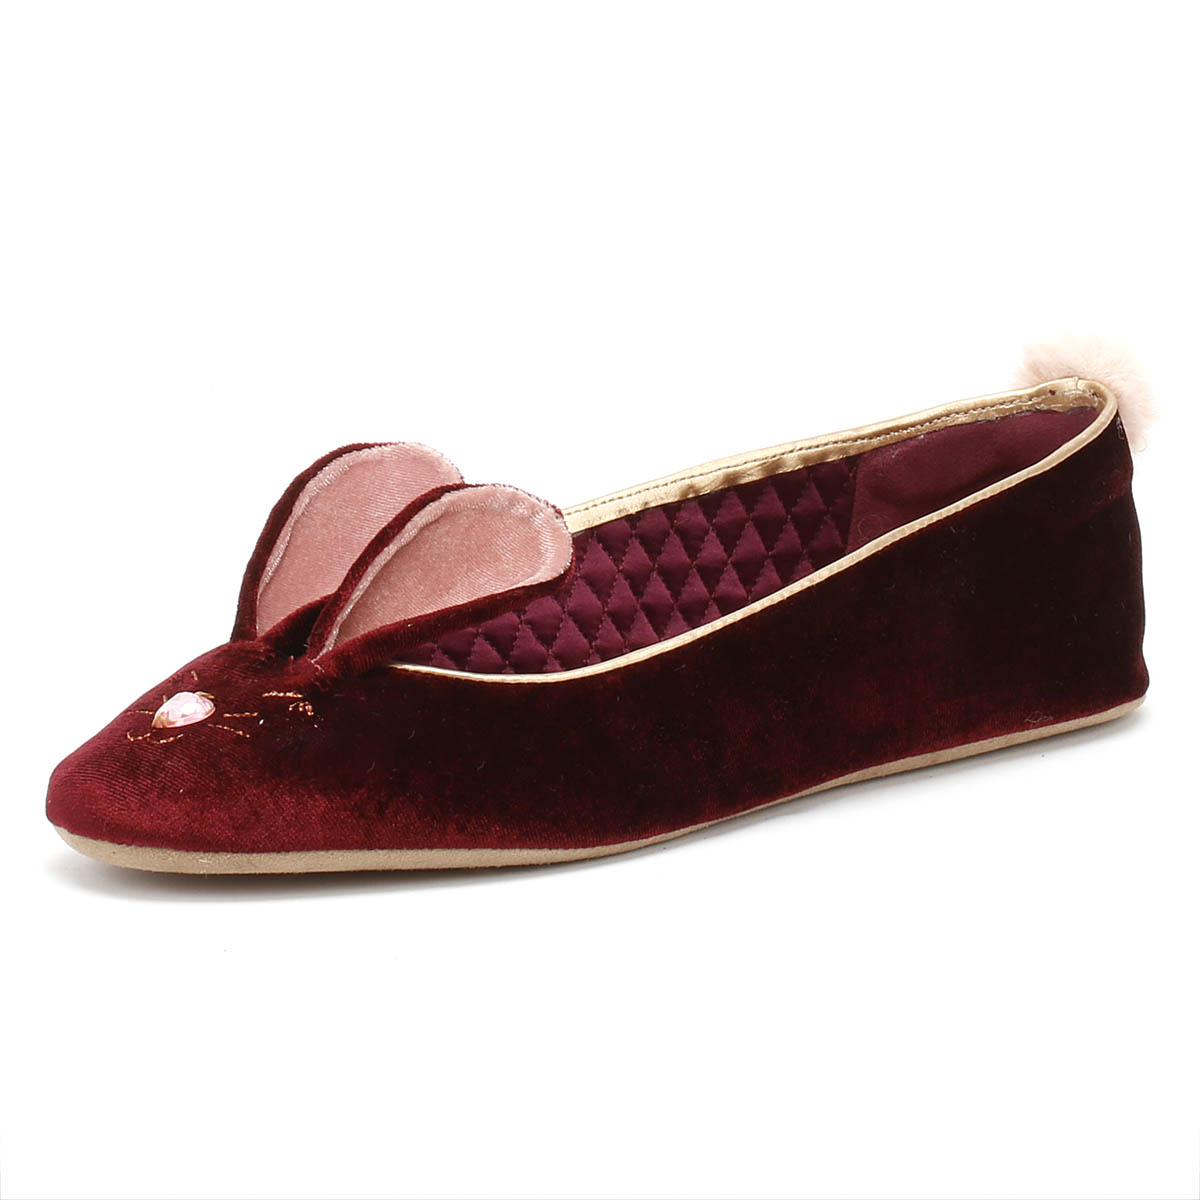 Adroit Ted Baker Bhunni Womens Burgundy Slippers Casual Ladies Home Shoes